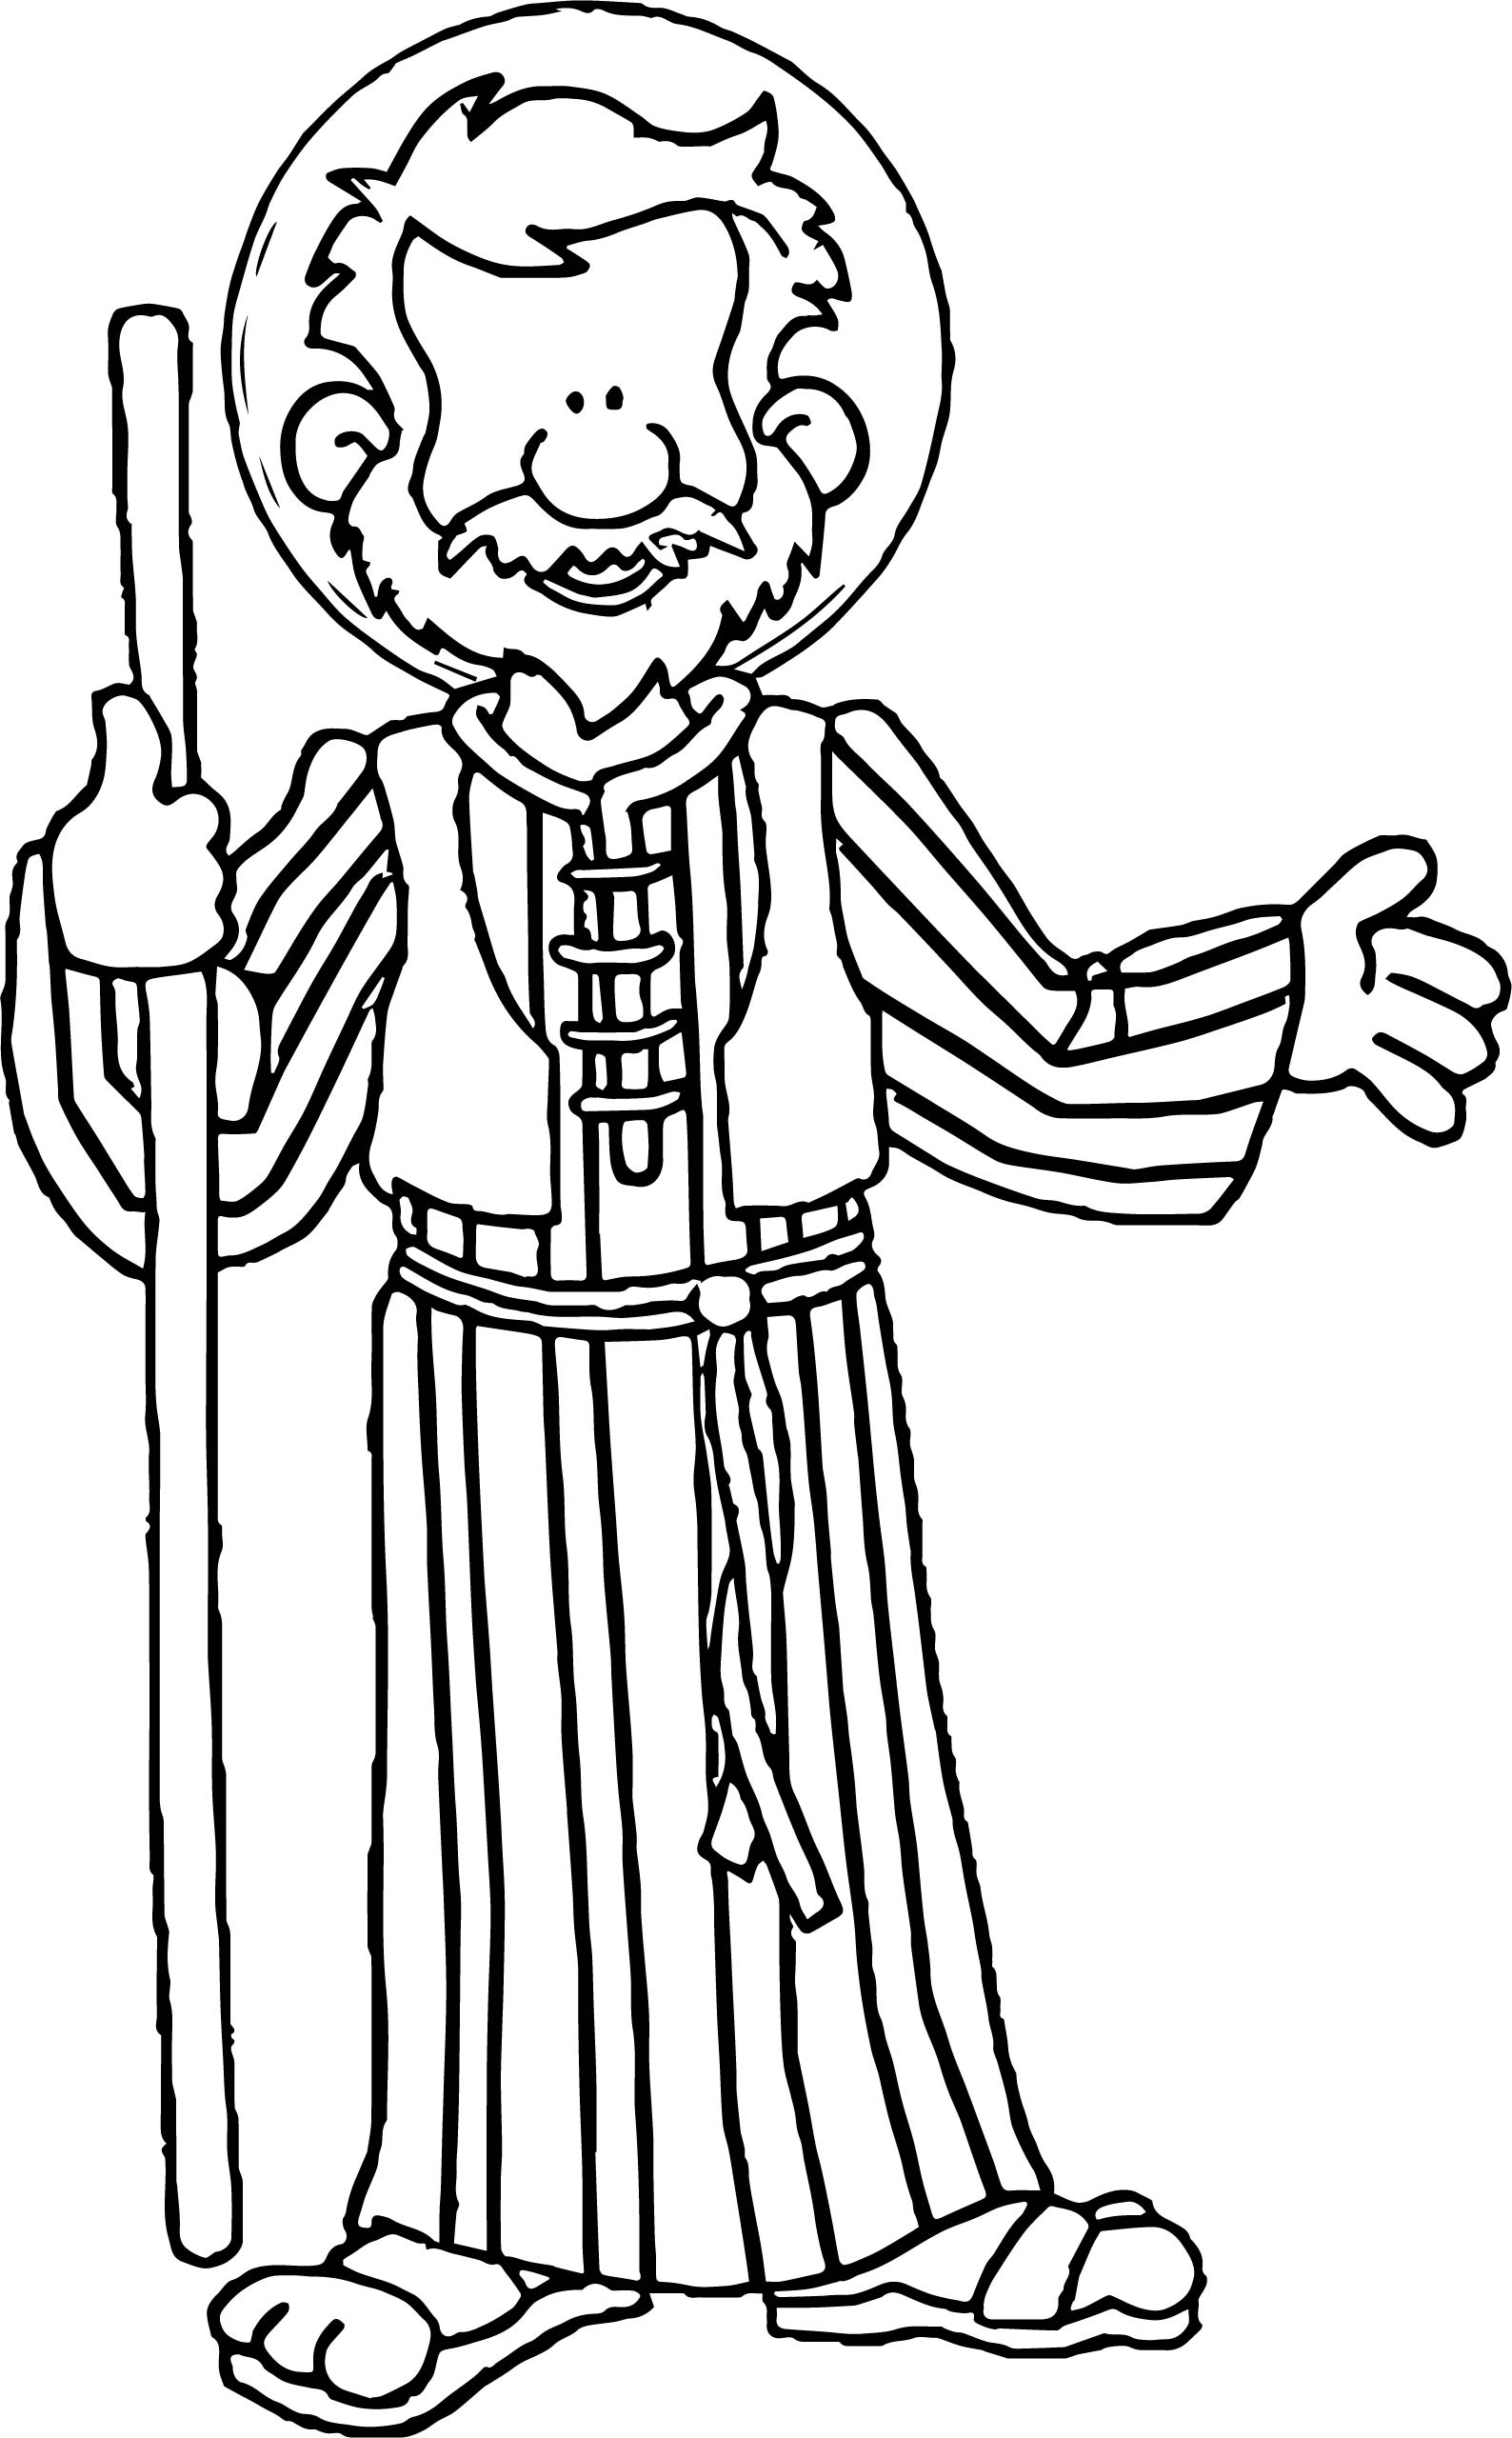 apostle paul coloring page cartoon paul the apostle coloring page free printable apostle page paul coloring